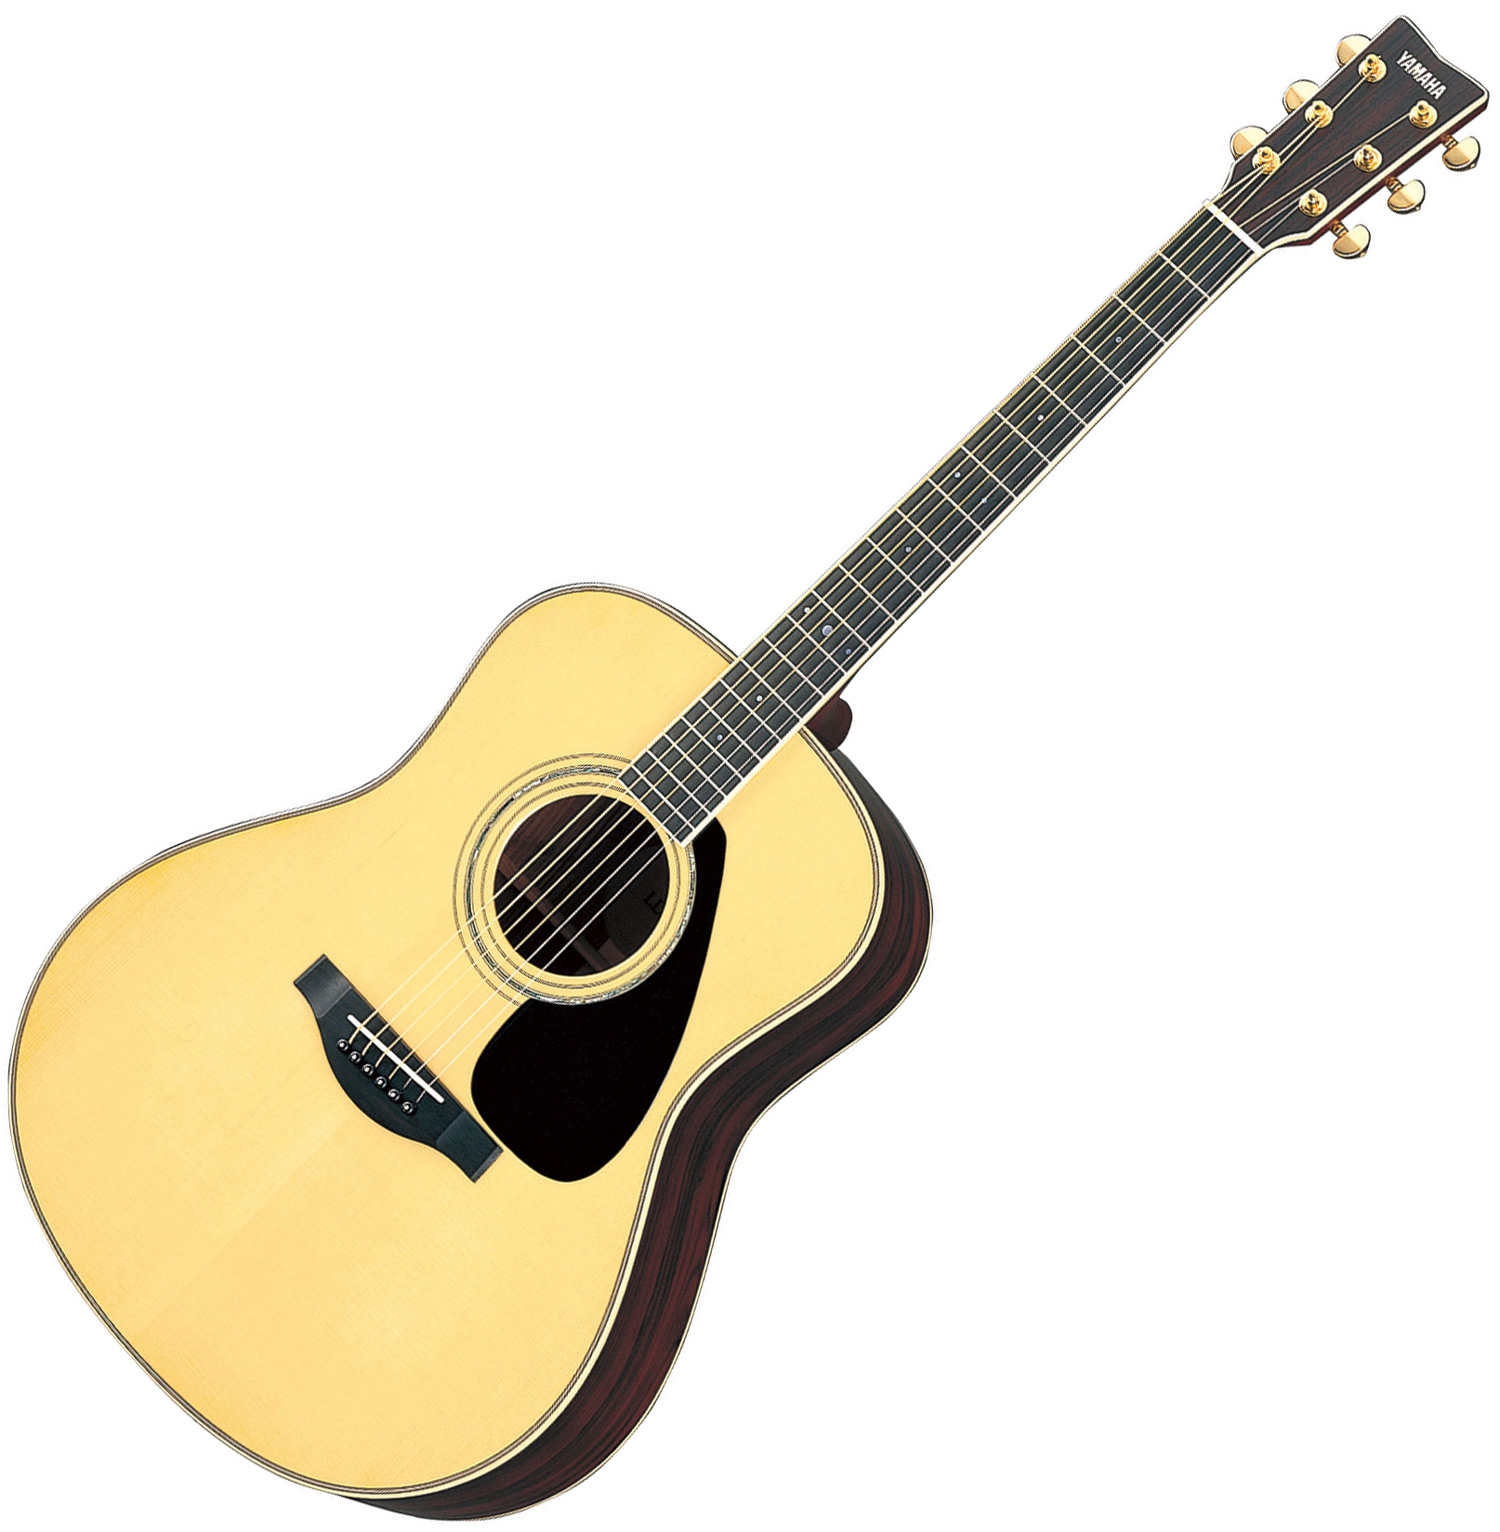 musicworks guitars acoustic guitars acoustic guitars yamaha ll handcrafted acoustic guitar. Black Bedroom Furniture Sets. Home Design Ideas